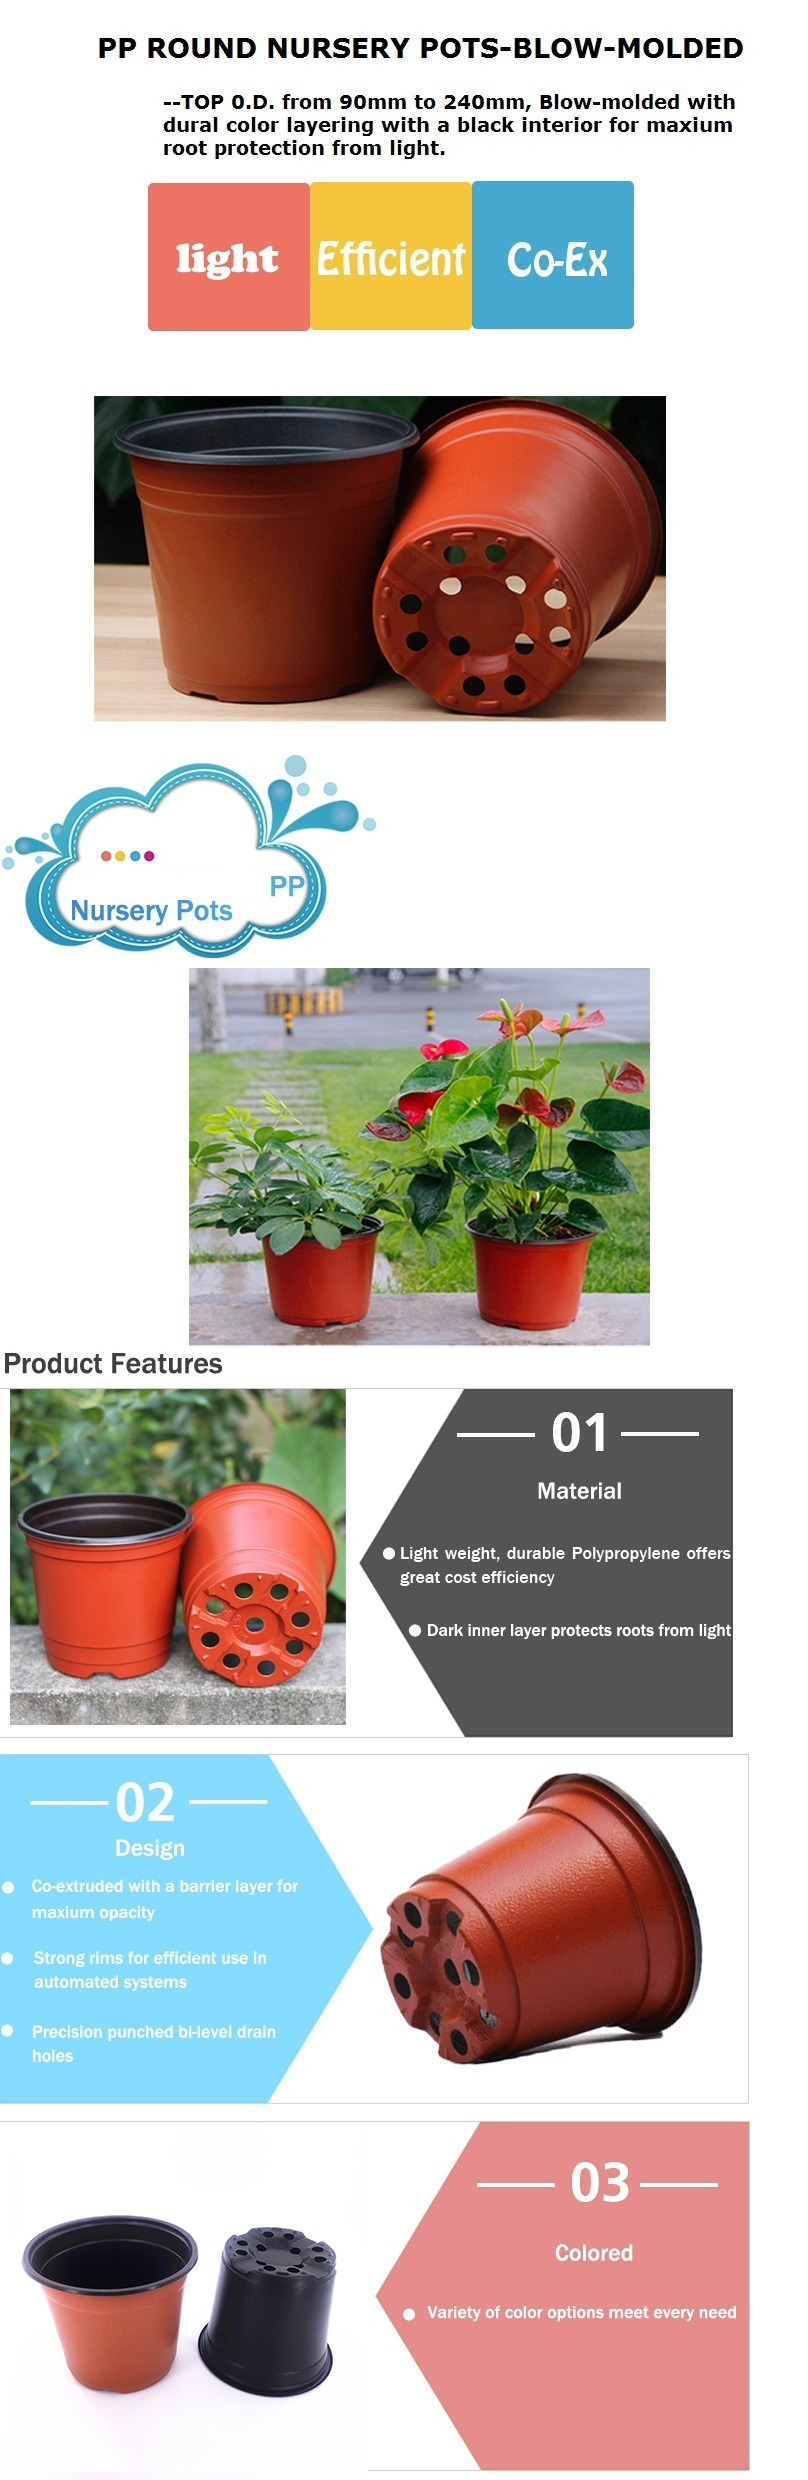 Garden Special-purpose 4 inch Small Cute Plastic Flower Pots Manufacturer